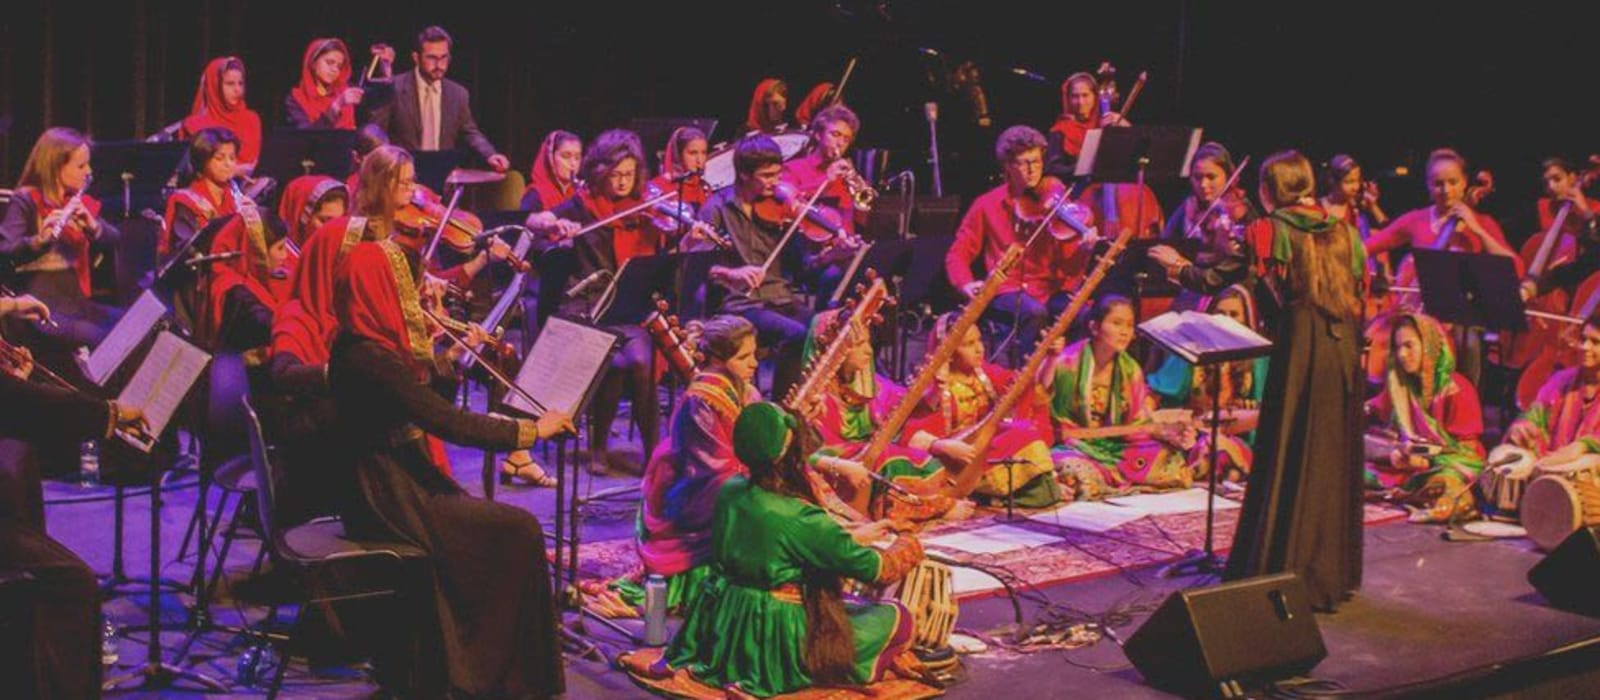 Afghanaid Presents: Celebrating Music & Dance in Afghanistan